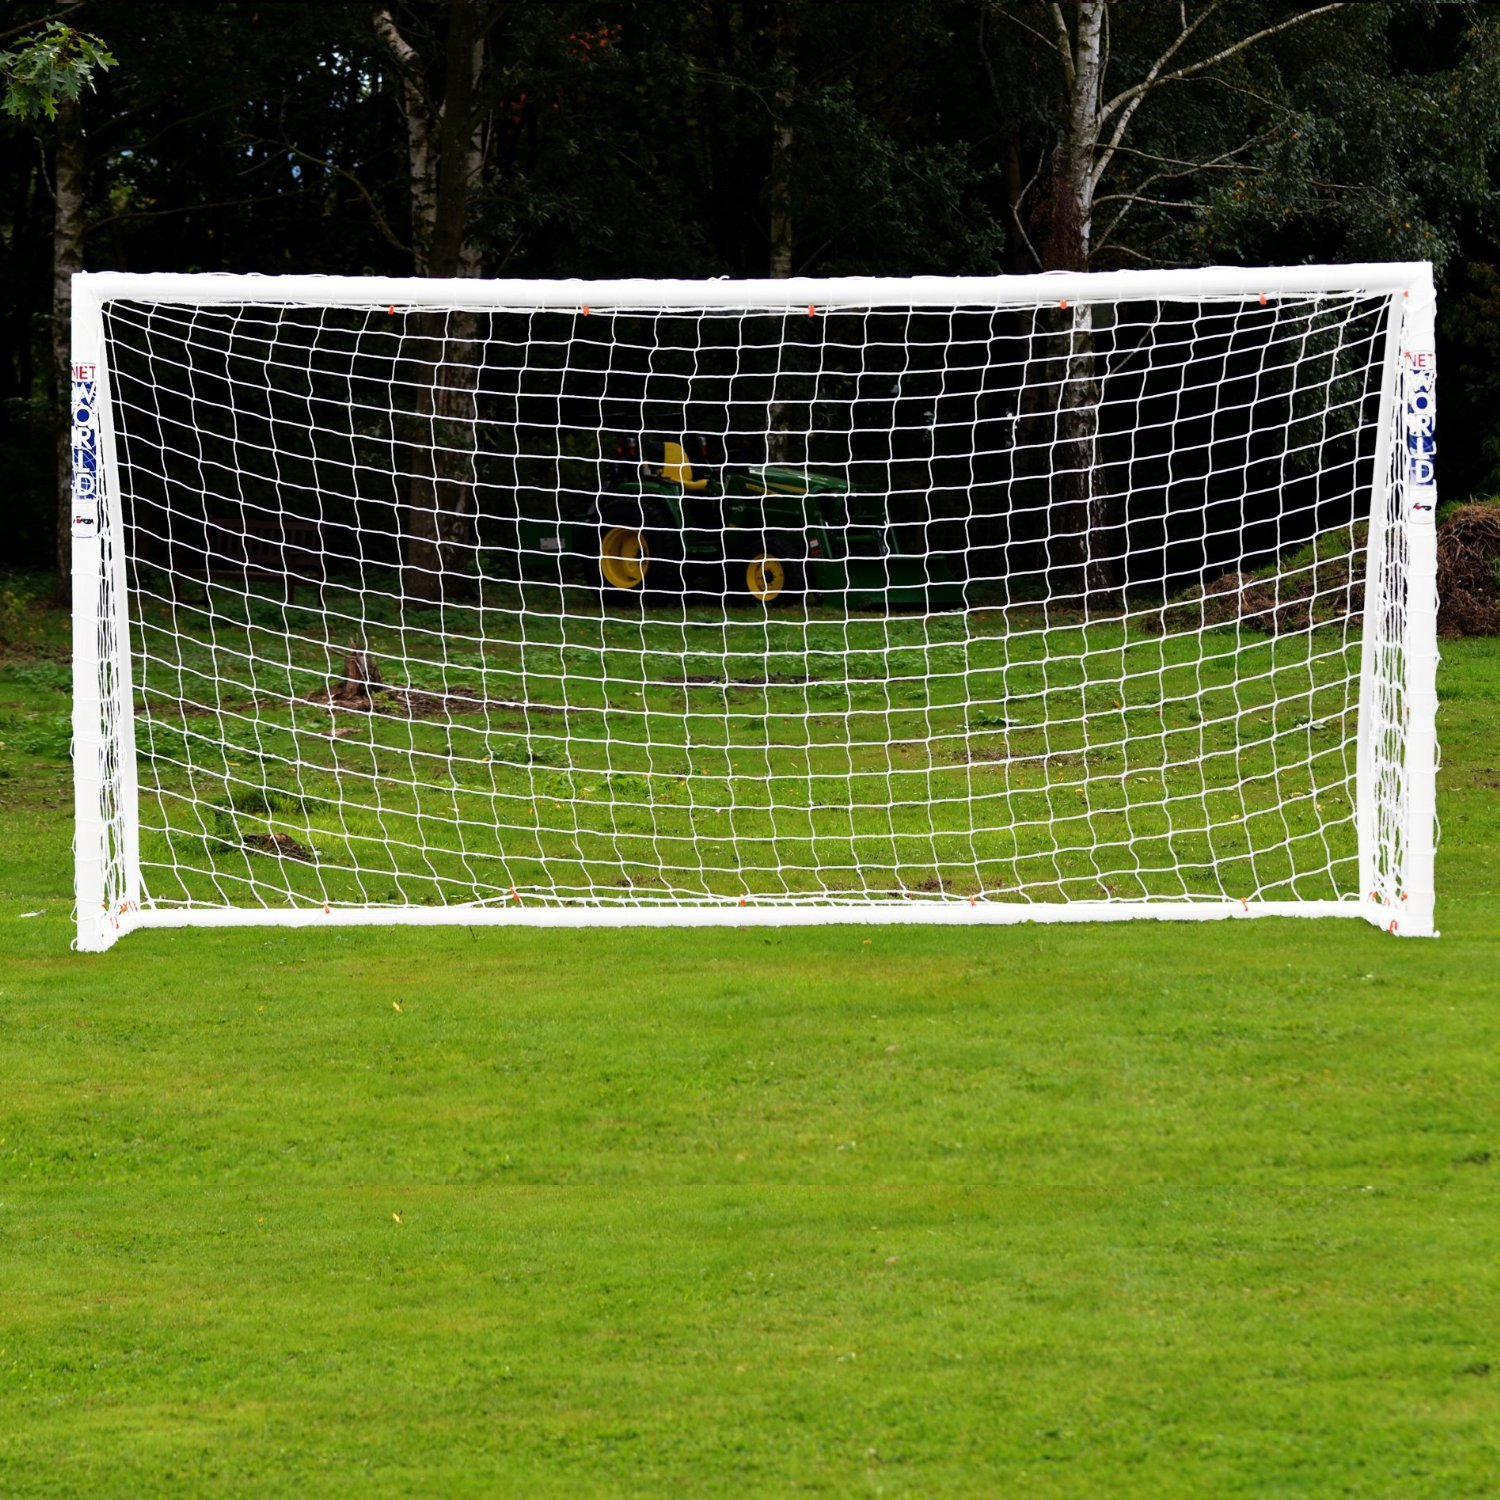 Best Soccer Nets For Backyard : Soccer Goal Related Keywords & Suggestions  Soccer Goal Long Tail